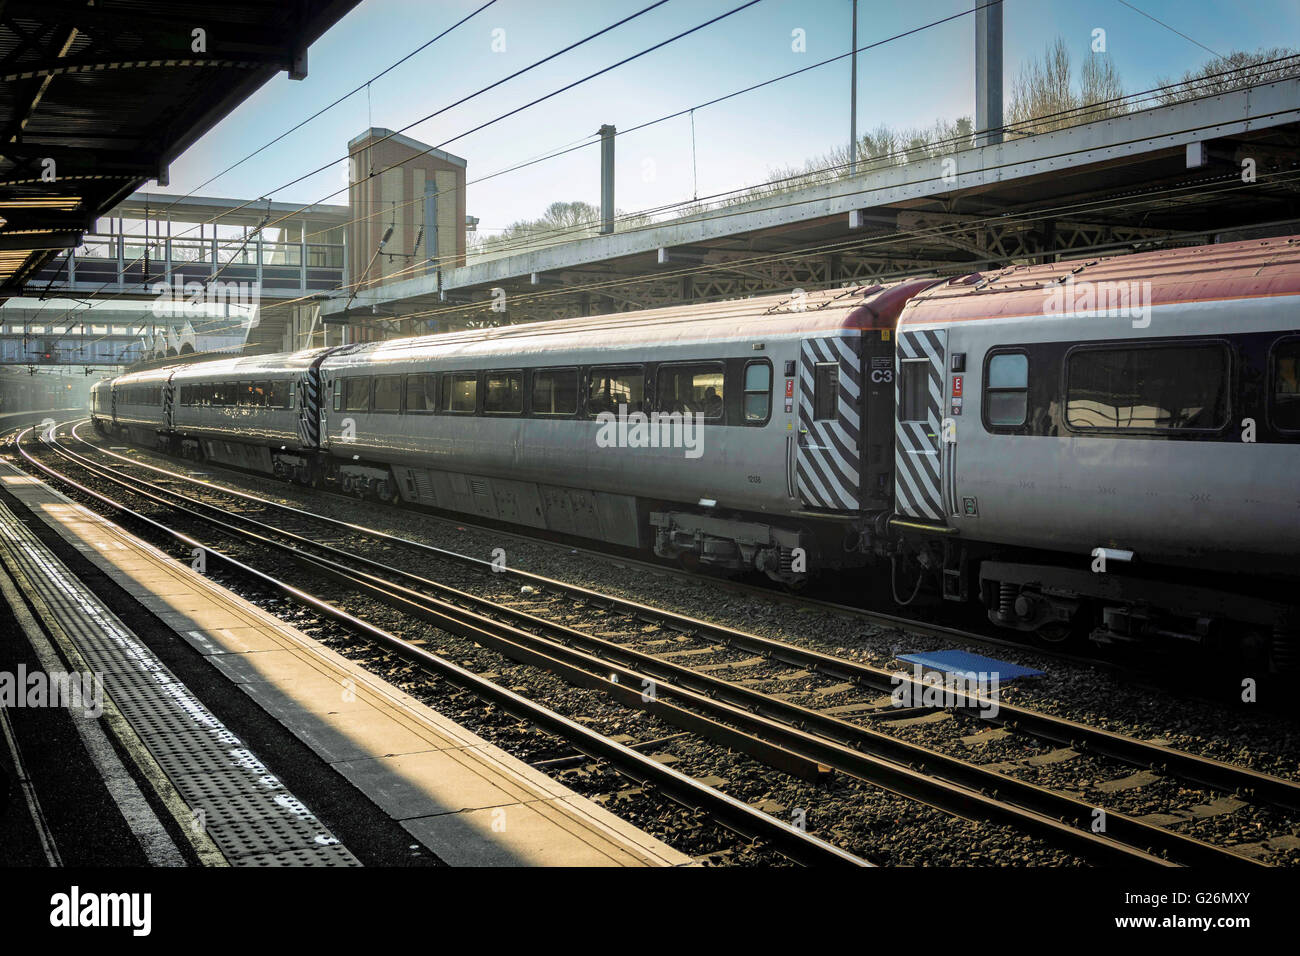 TraIn at the platform with diminishing view of tracks - Stock Image